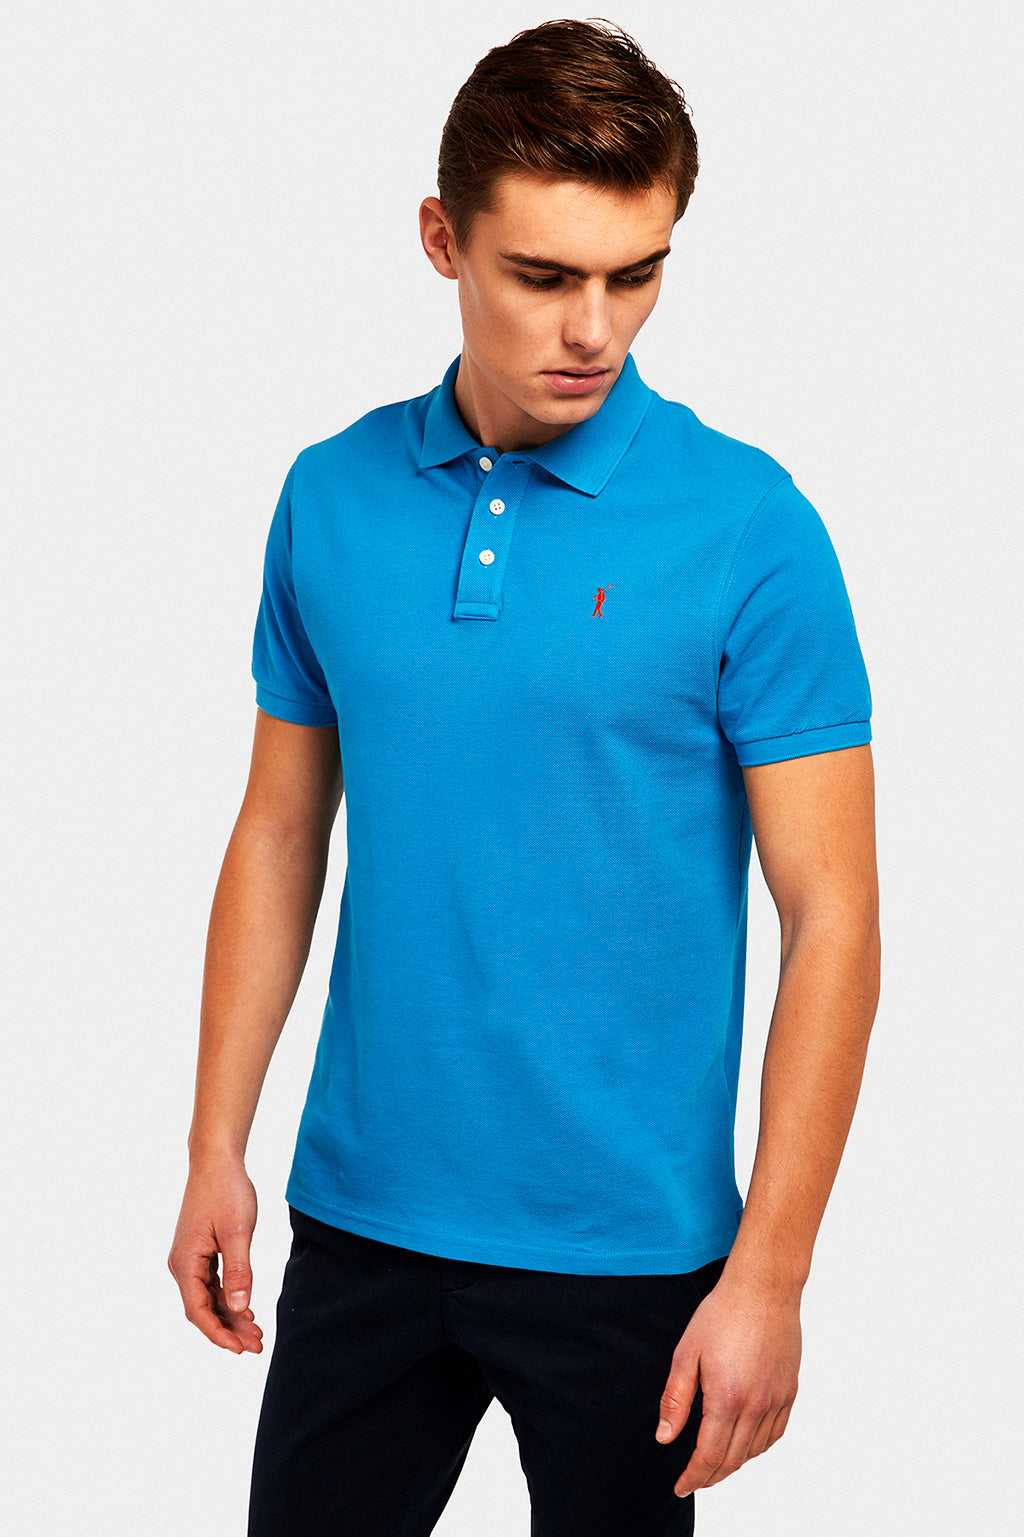 Blue custom fit polo shirt